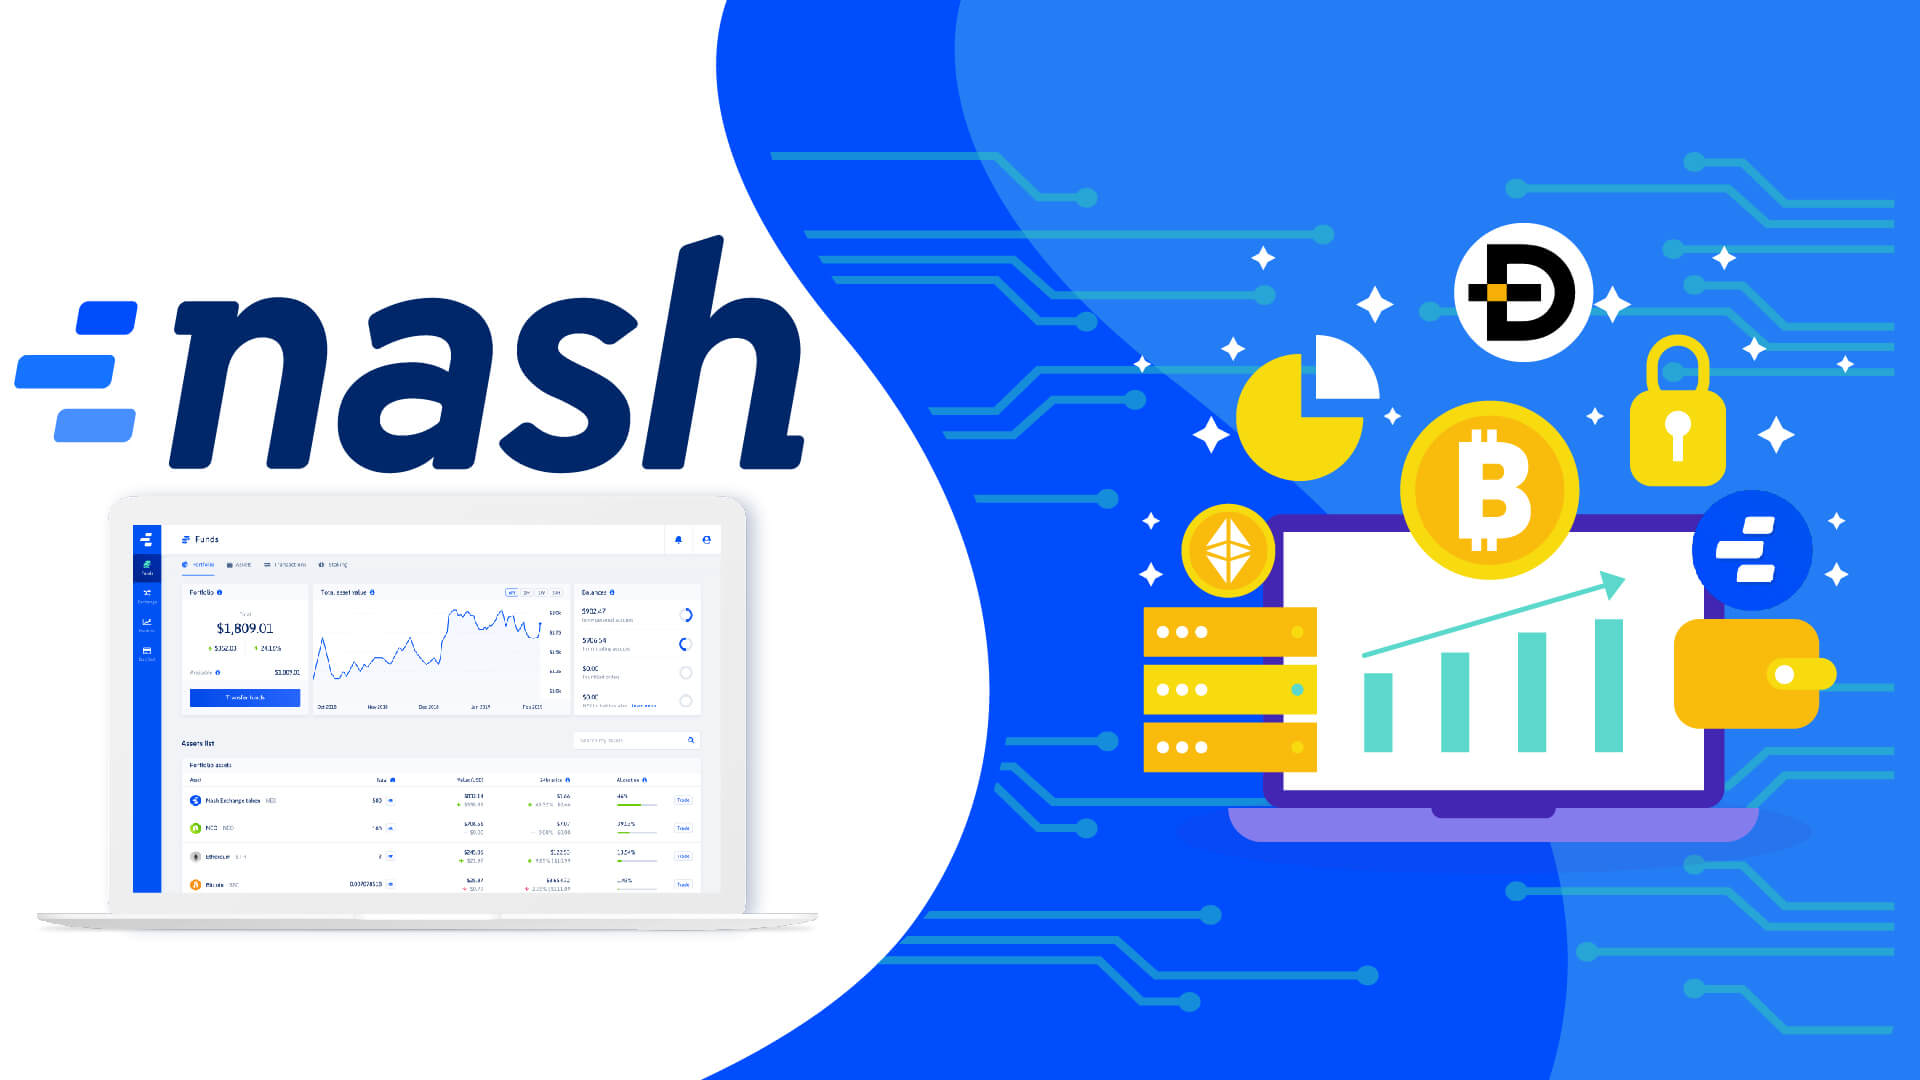 nash-dex-exchange